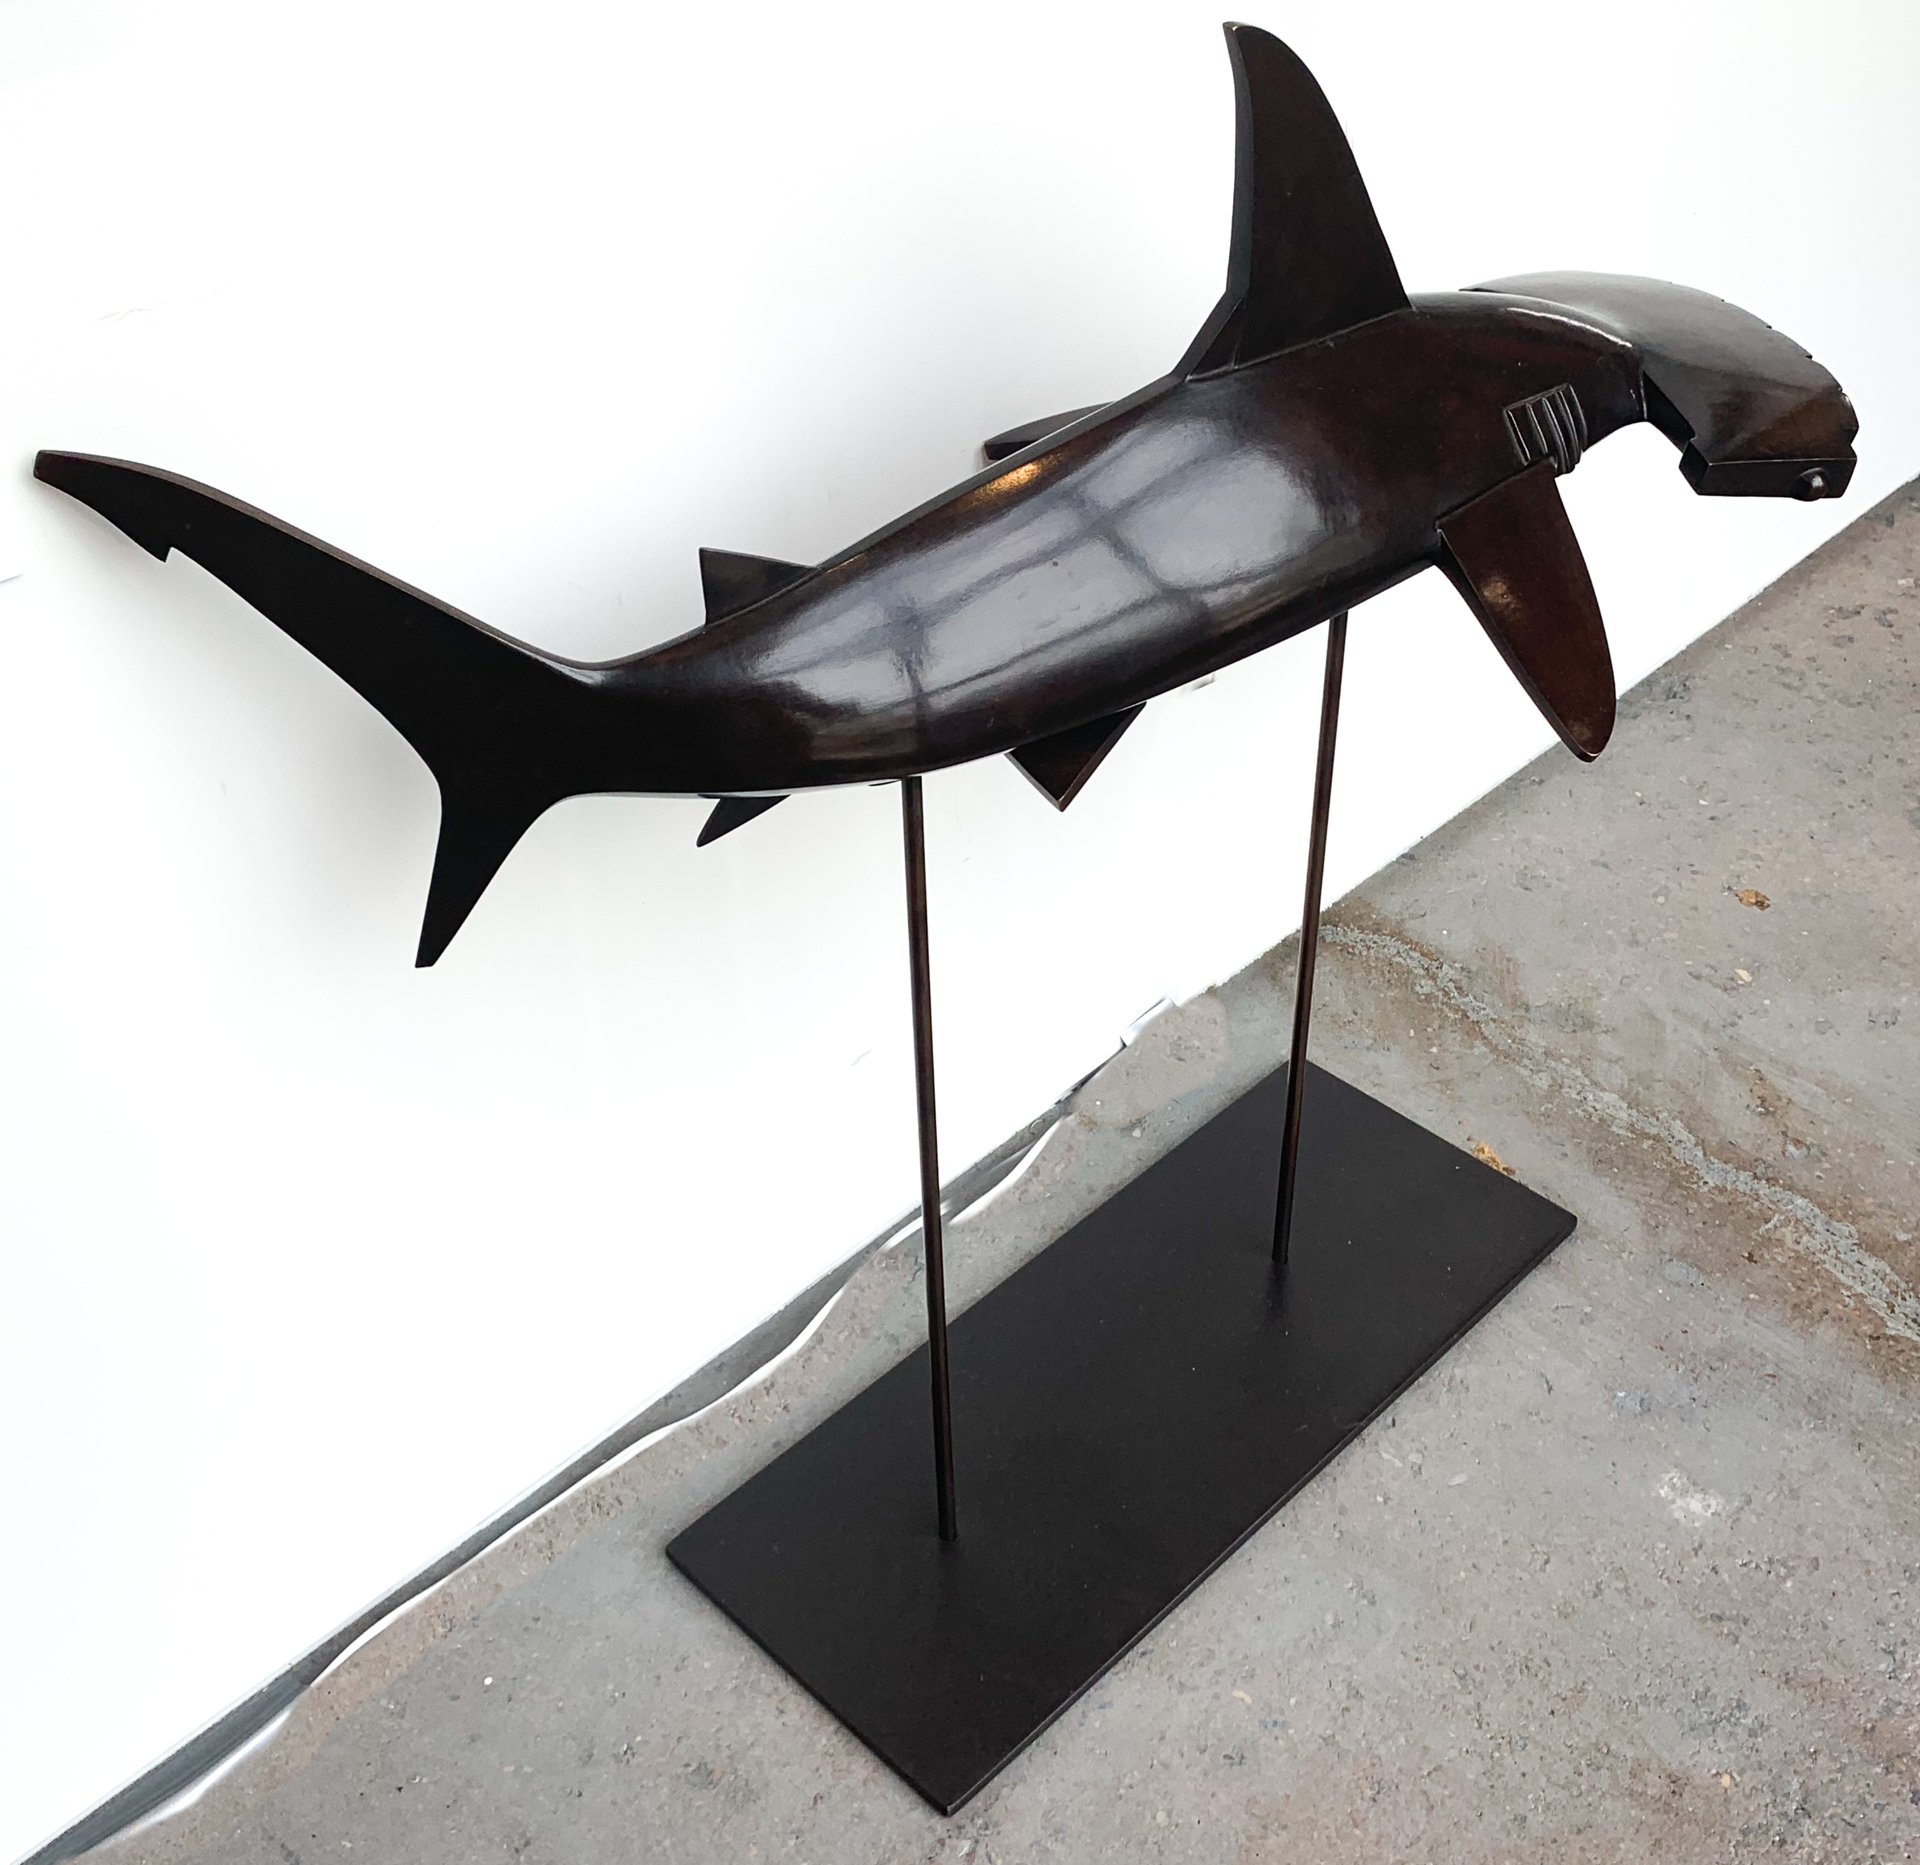 Hammer Head Shark by Jennifer Troice